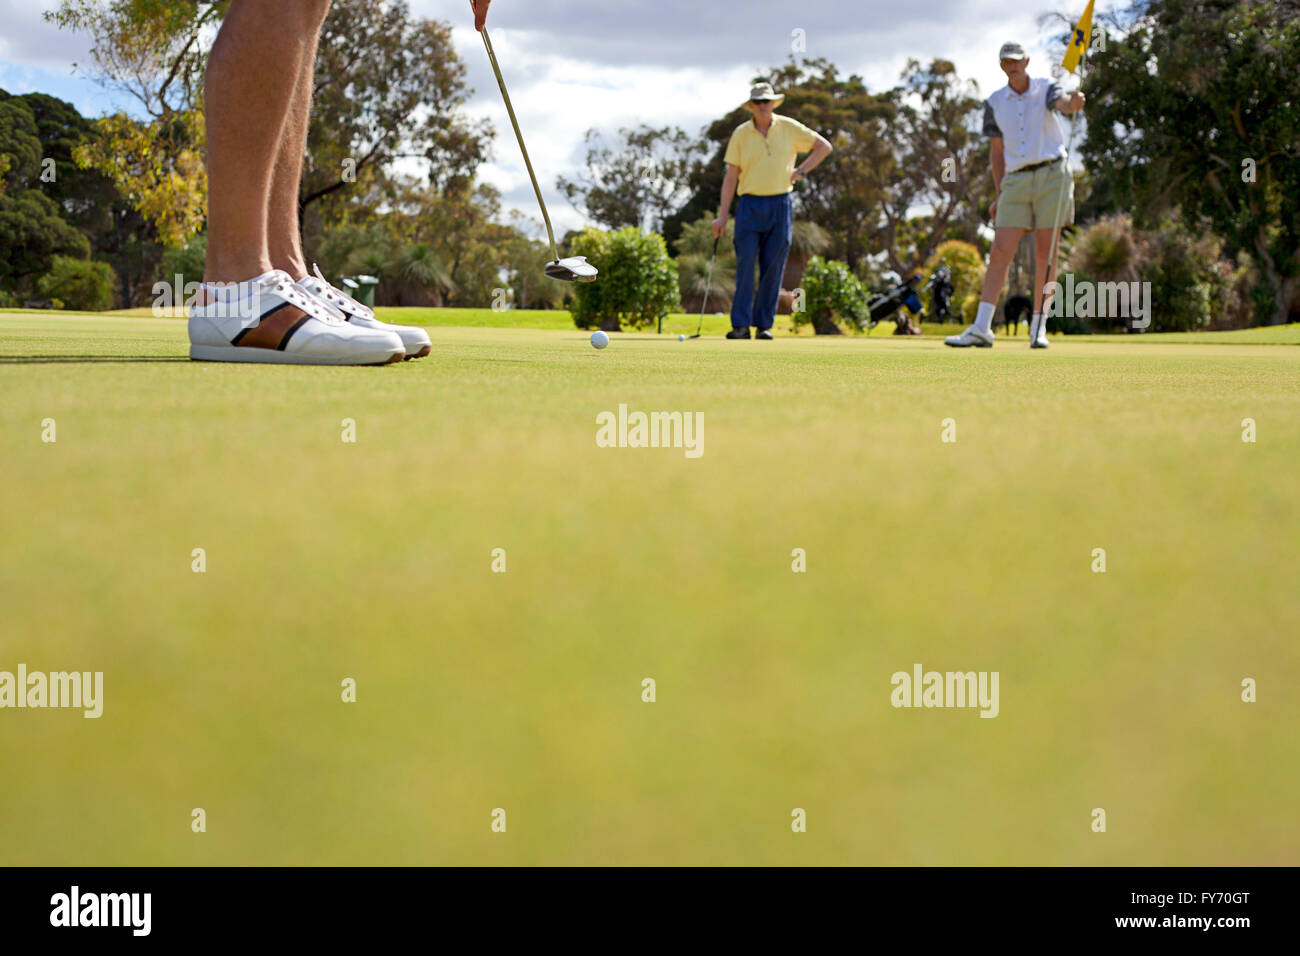 Low angle photo of man putting on golf green with two fellow golfers looking on. - Stock Image